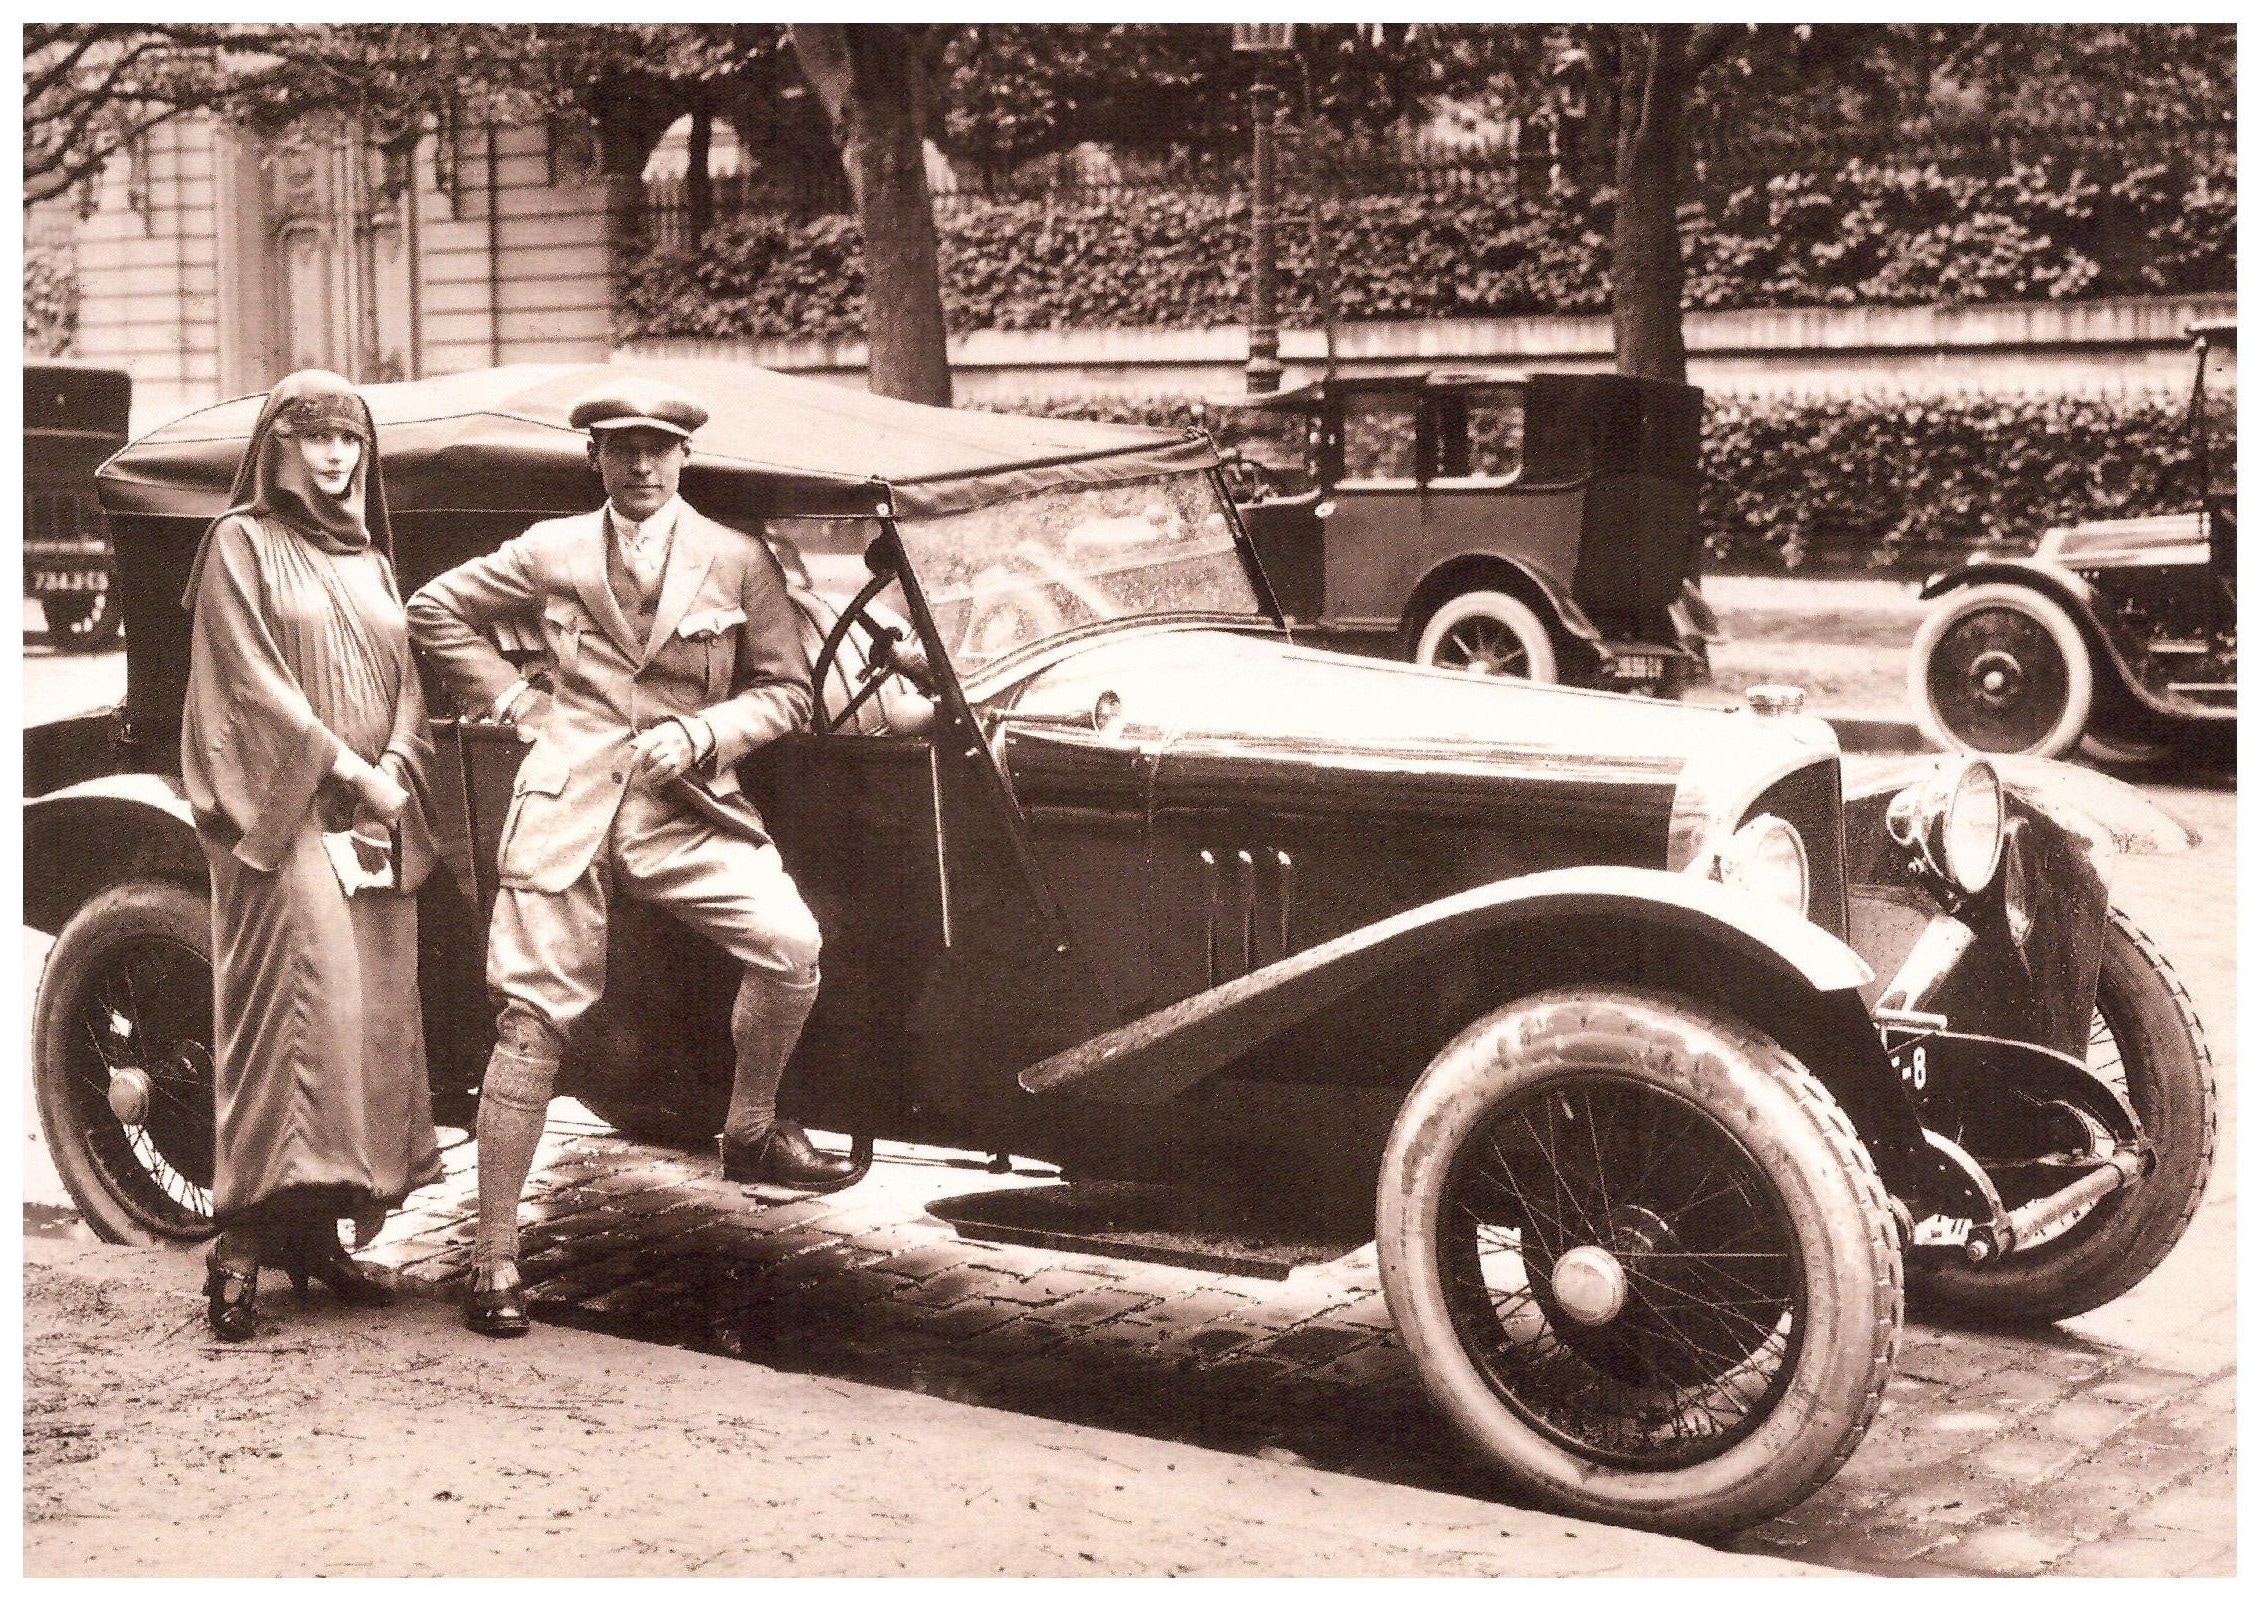 1588649940011_16. automobile.jpeg - Rudy e Natacha, a Parigi, nel 1923